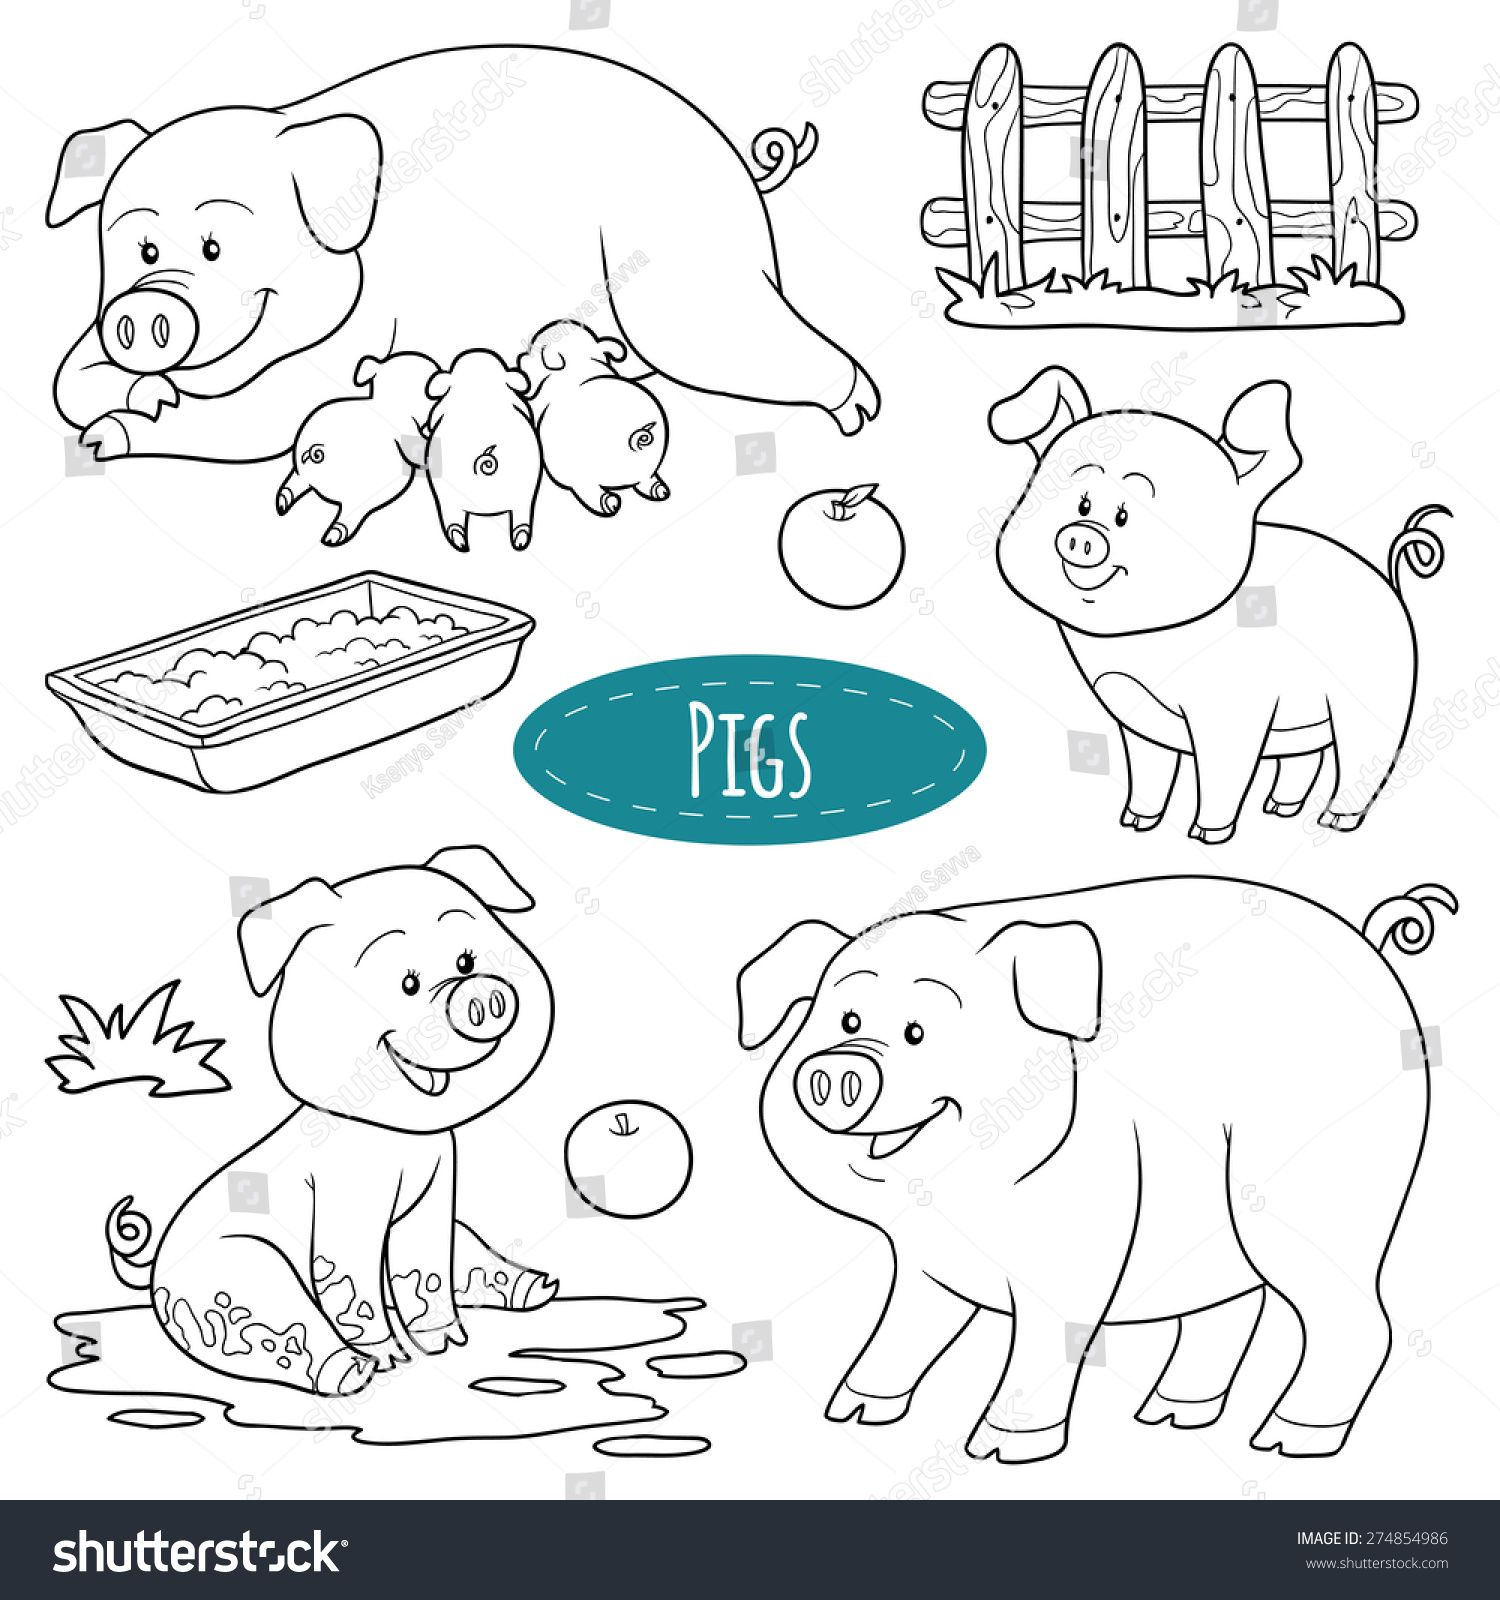 Stock Vector Set Of Cute Farm Animals And Objects Vector